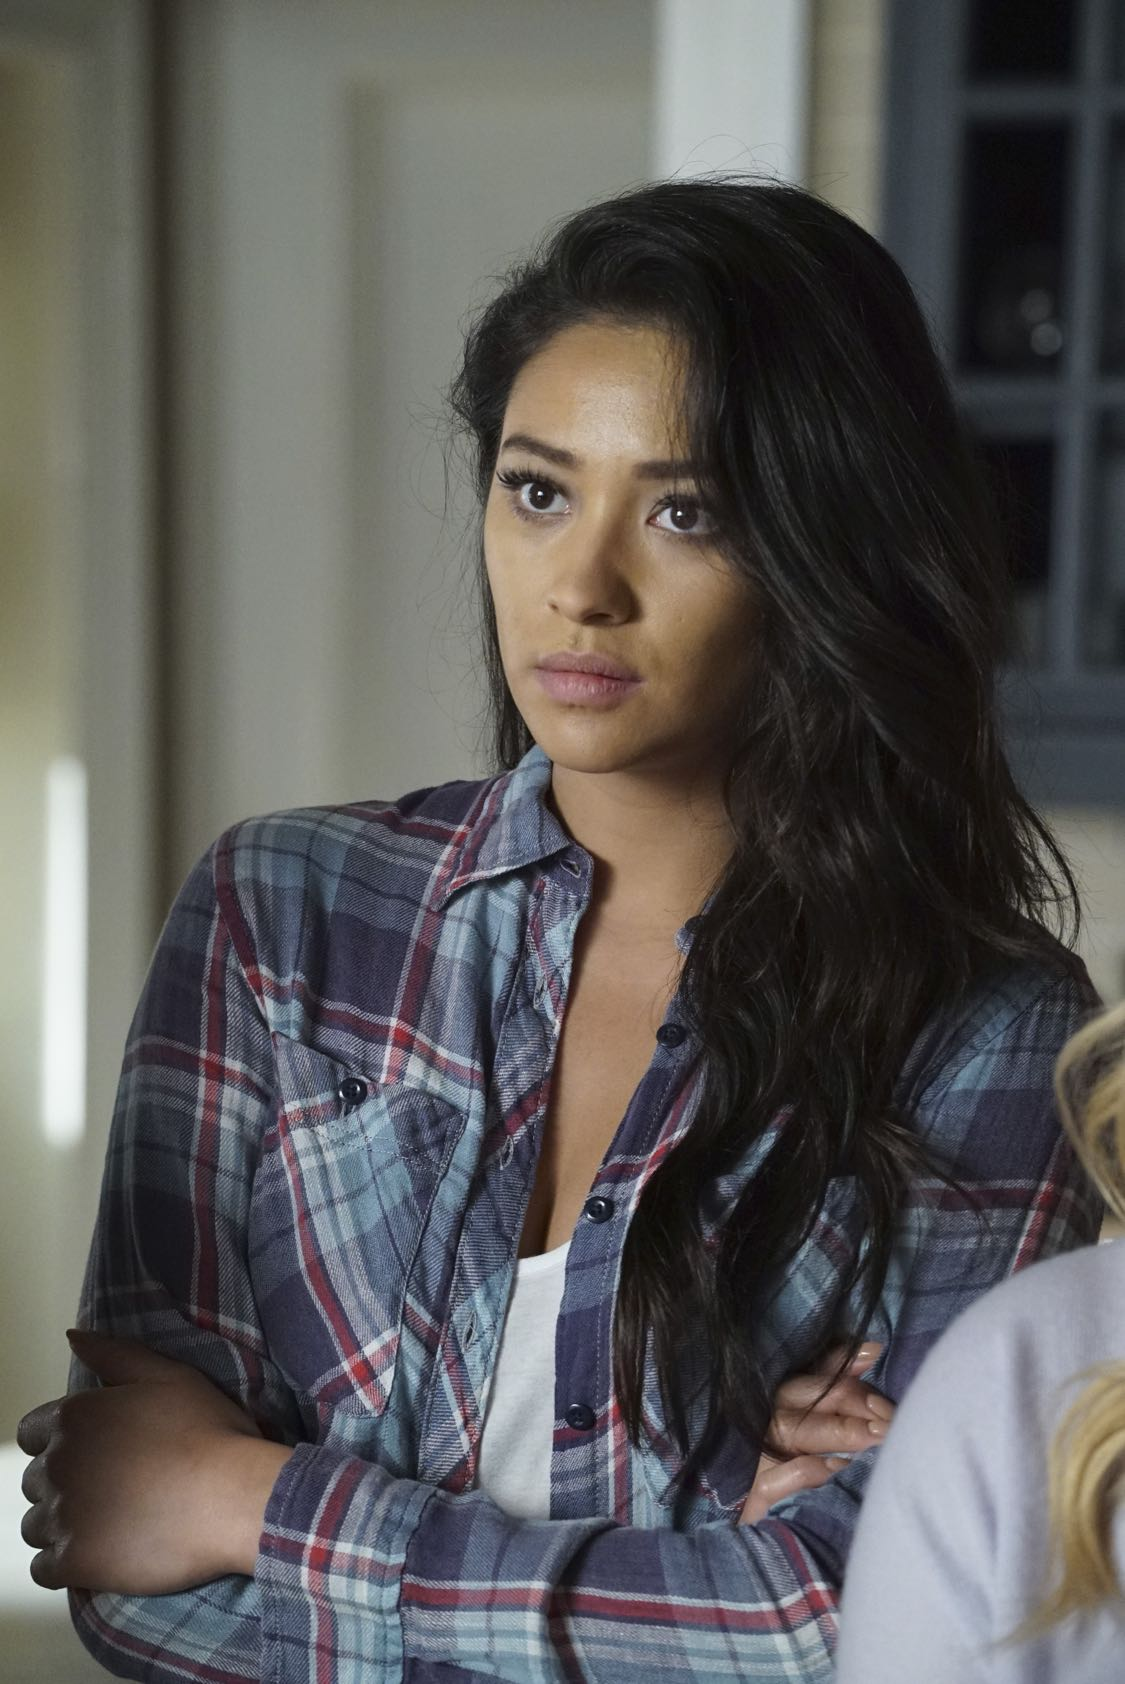 """PRETTY LITTLE LIARS - """"The Darkest Knight"""" - The PLLs confront old foes head-on and mayhem ensues in """"The Darkest Knight,"""" the summer finale of the hit original series """"Pretty Little Liars,"""" airing TUESDAY, AUGUST 30 (8:00-9:00 p.m. EDT). Fans can catch up on all of the drama with an all-day marathon of season seven starting at 11:00 a.m. EDT and running up to the one-hour summer finale at 8:00 p.m. EDT. (Freeform/Ron Tom) SHAY MITCHELL"""